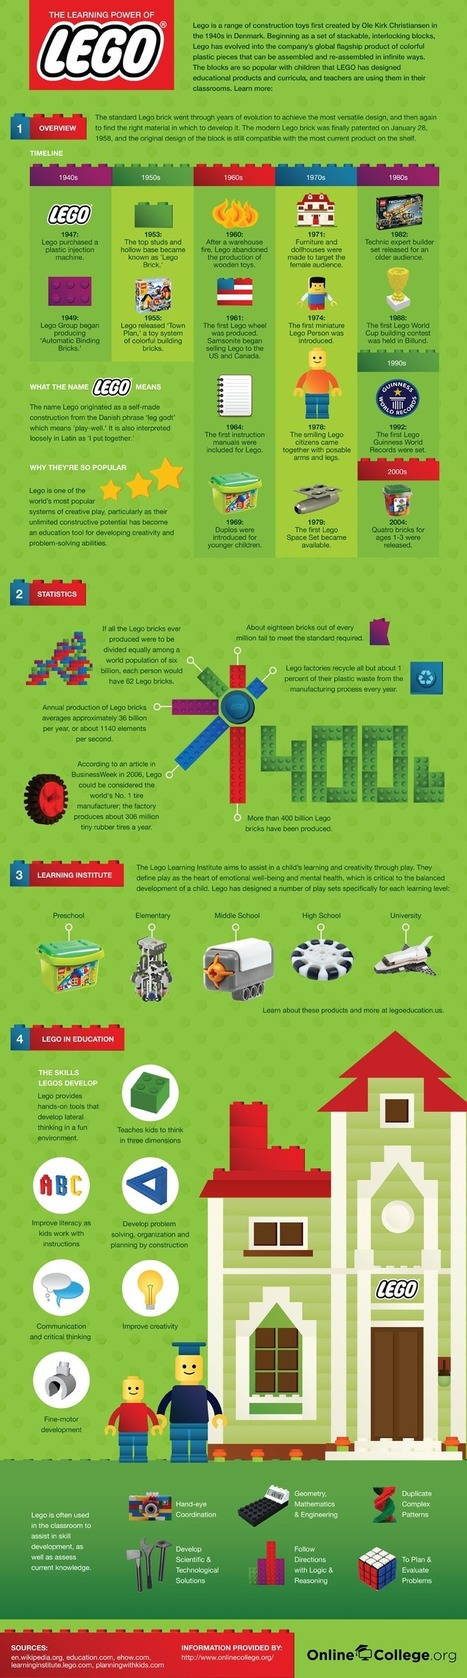 El poder de Lego en la educación #infografia #infographic #education | Personal [e-]Learning Environments | Scoop.it